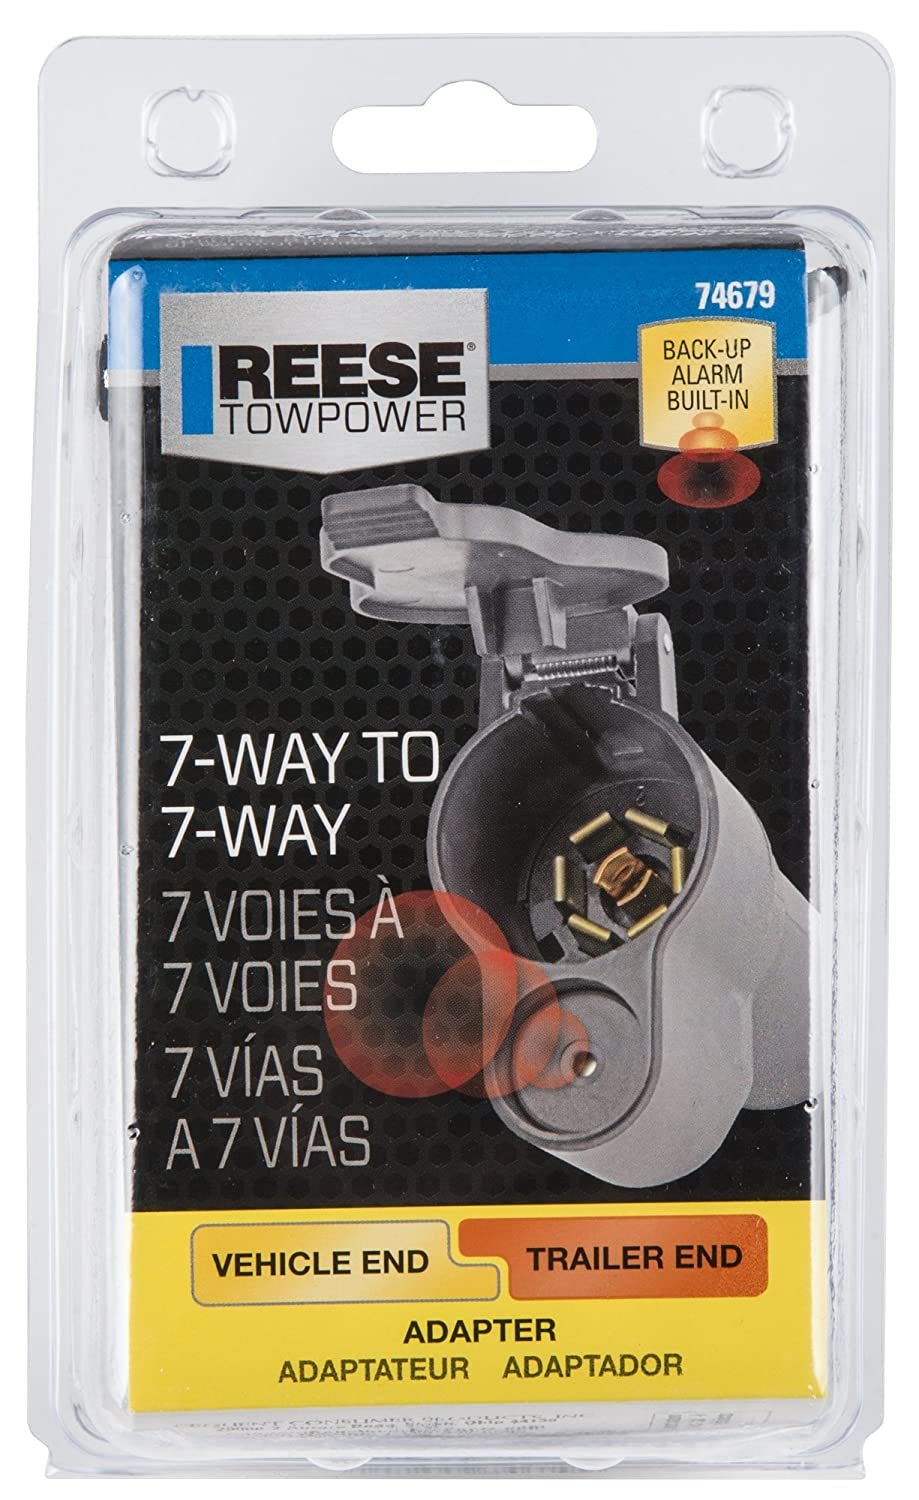 Reese Towpower 74679 7-Way Blade Instant Add-on Back-up Alarm Adapter